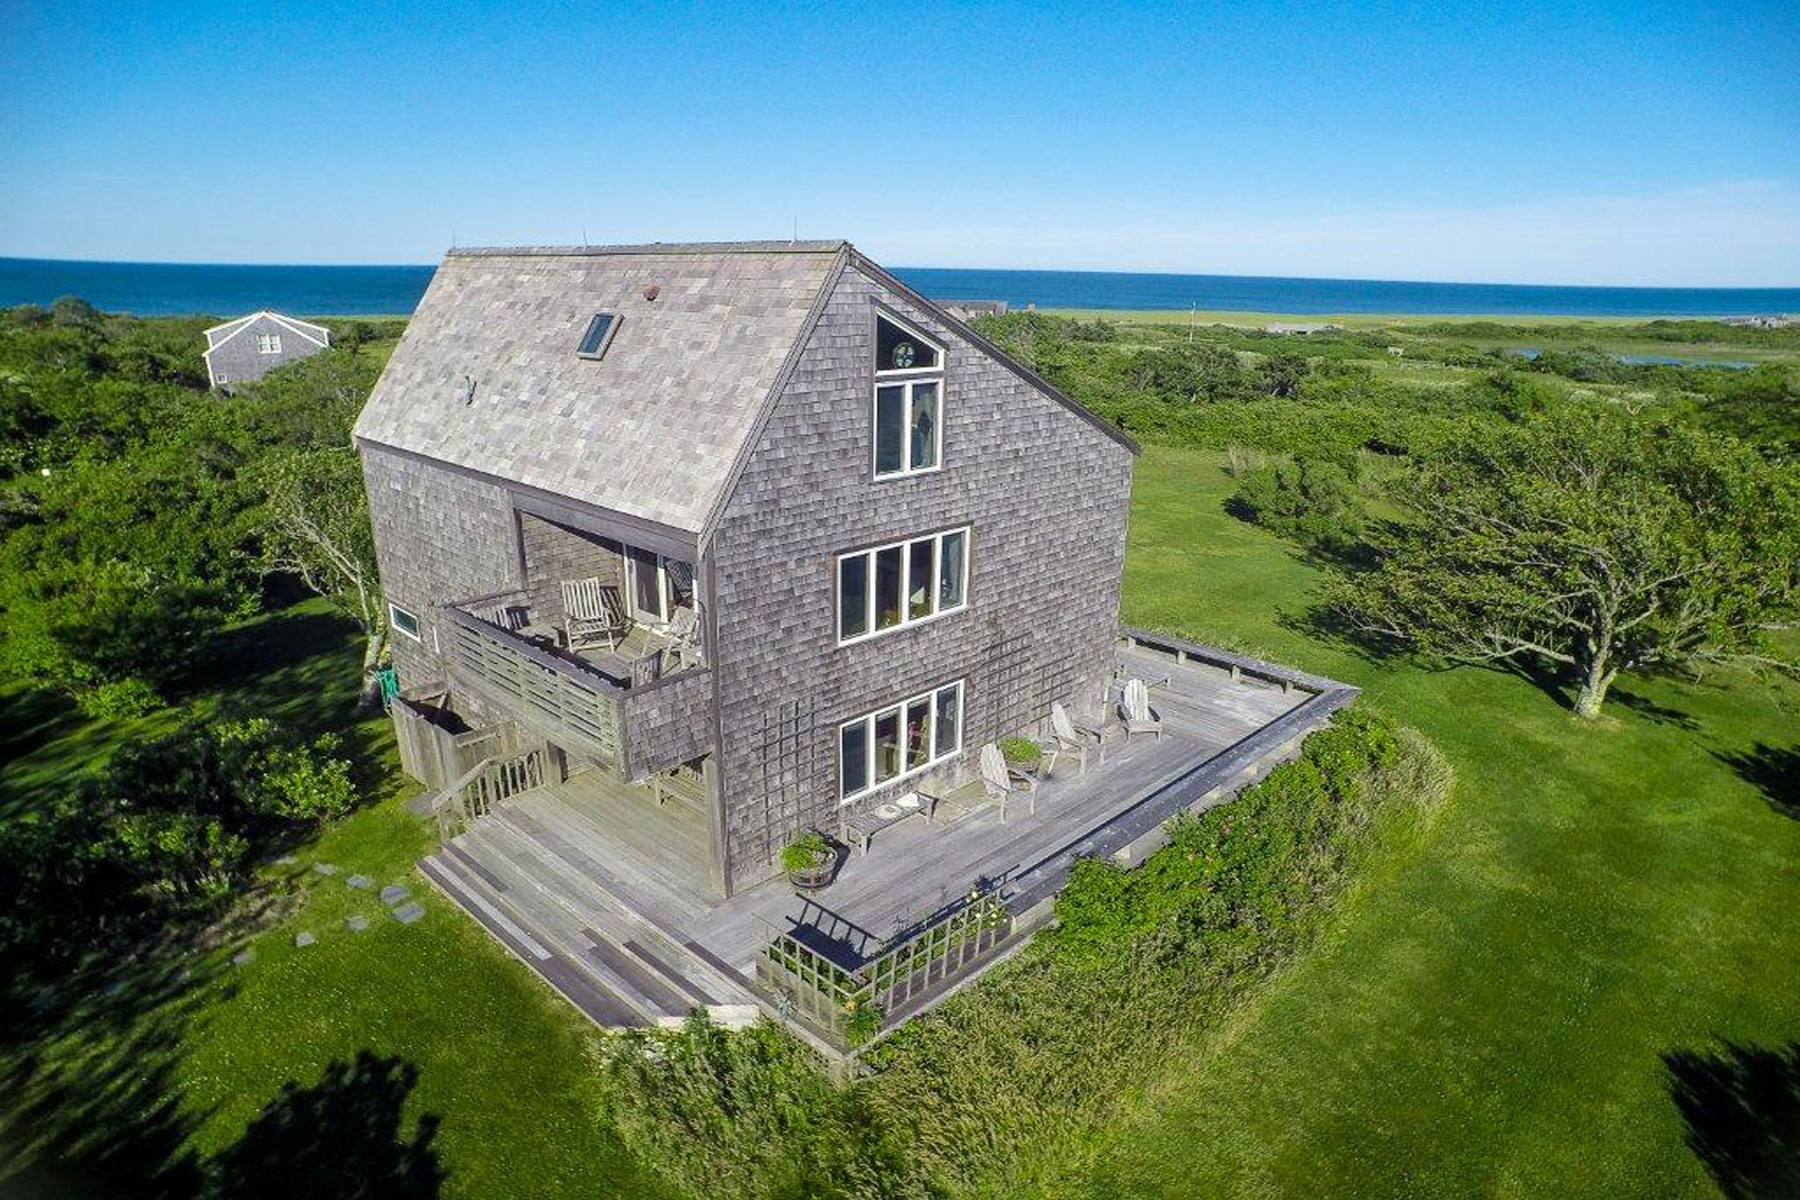 Single Family Home for Sale at Gorgeous Unobstructed Water Views! 56 Squam Road 58 Squam Road Nantucket, Massachusetts, 02554 United States